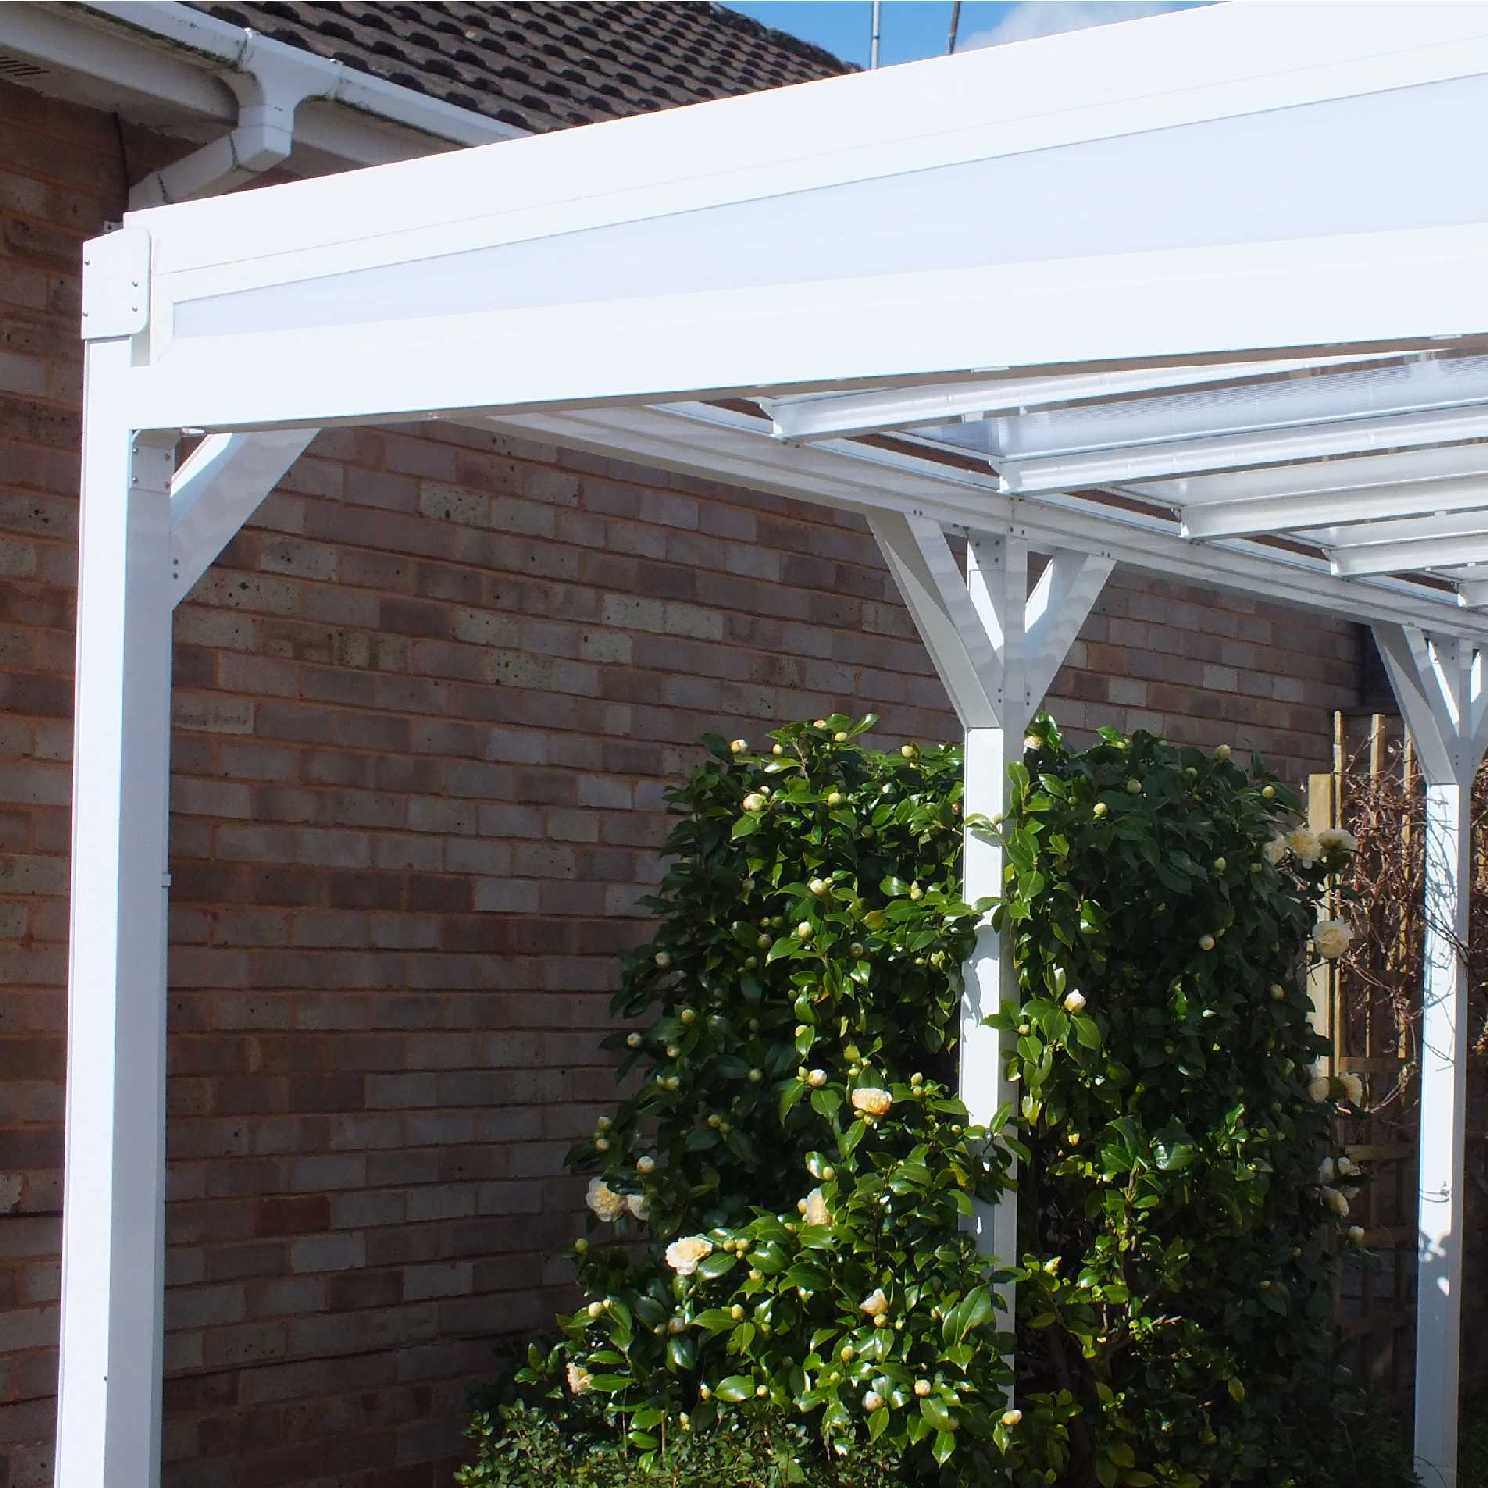 Omega Smart Lean-To Canopy with 16mm Polycarbonate Glazing - 3.5m (W) x 3.5m (P), (3) Supporting Posts from Omega Build